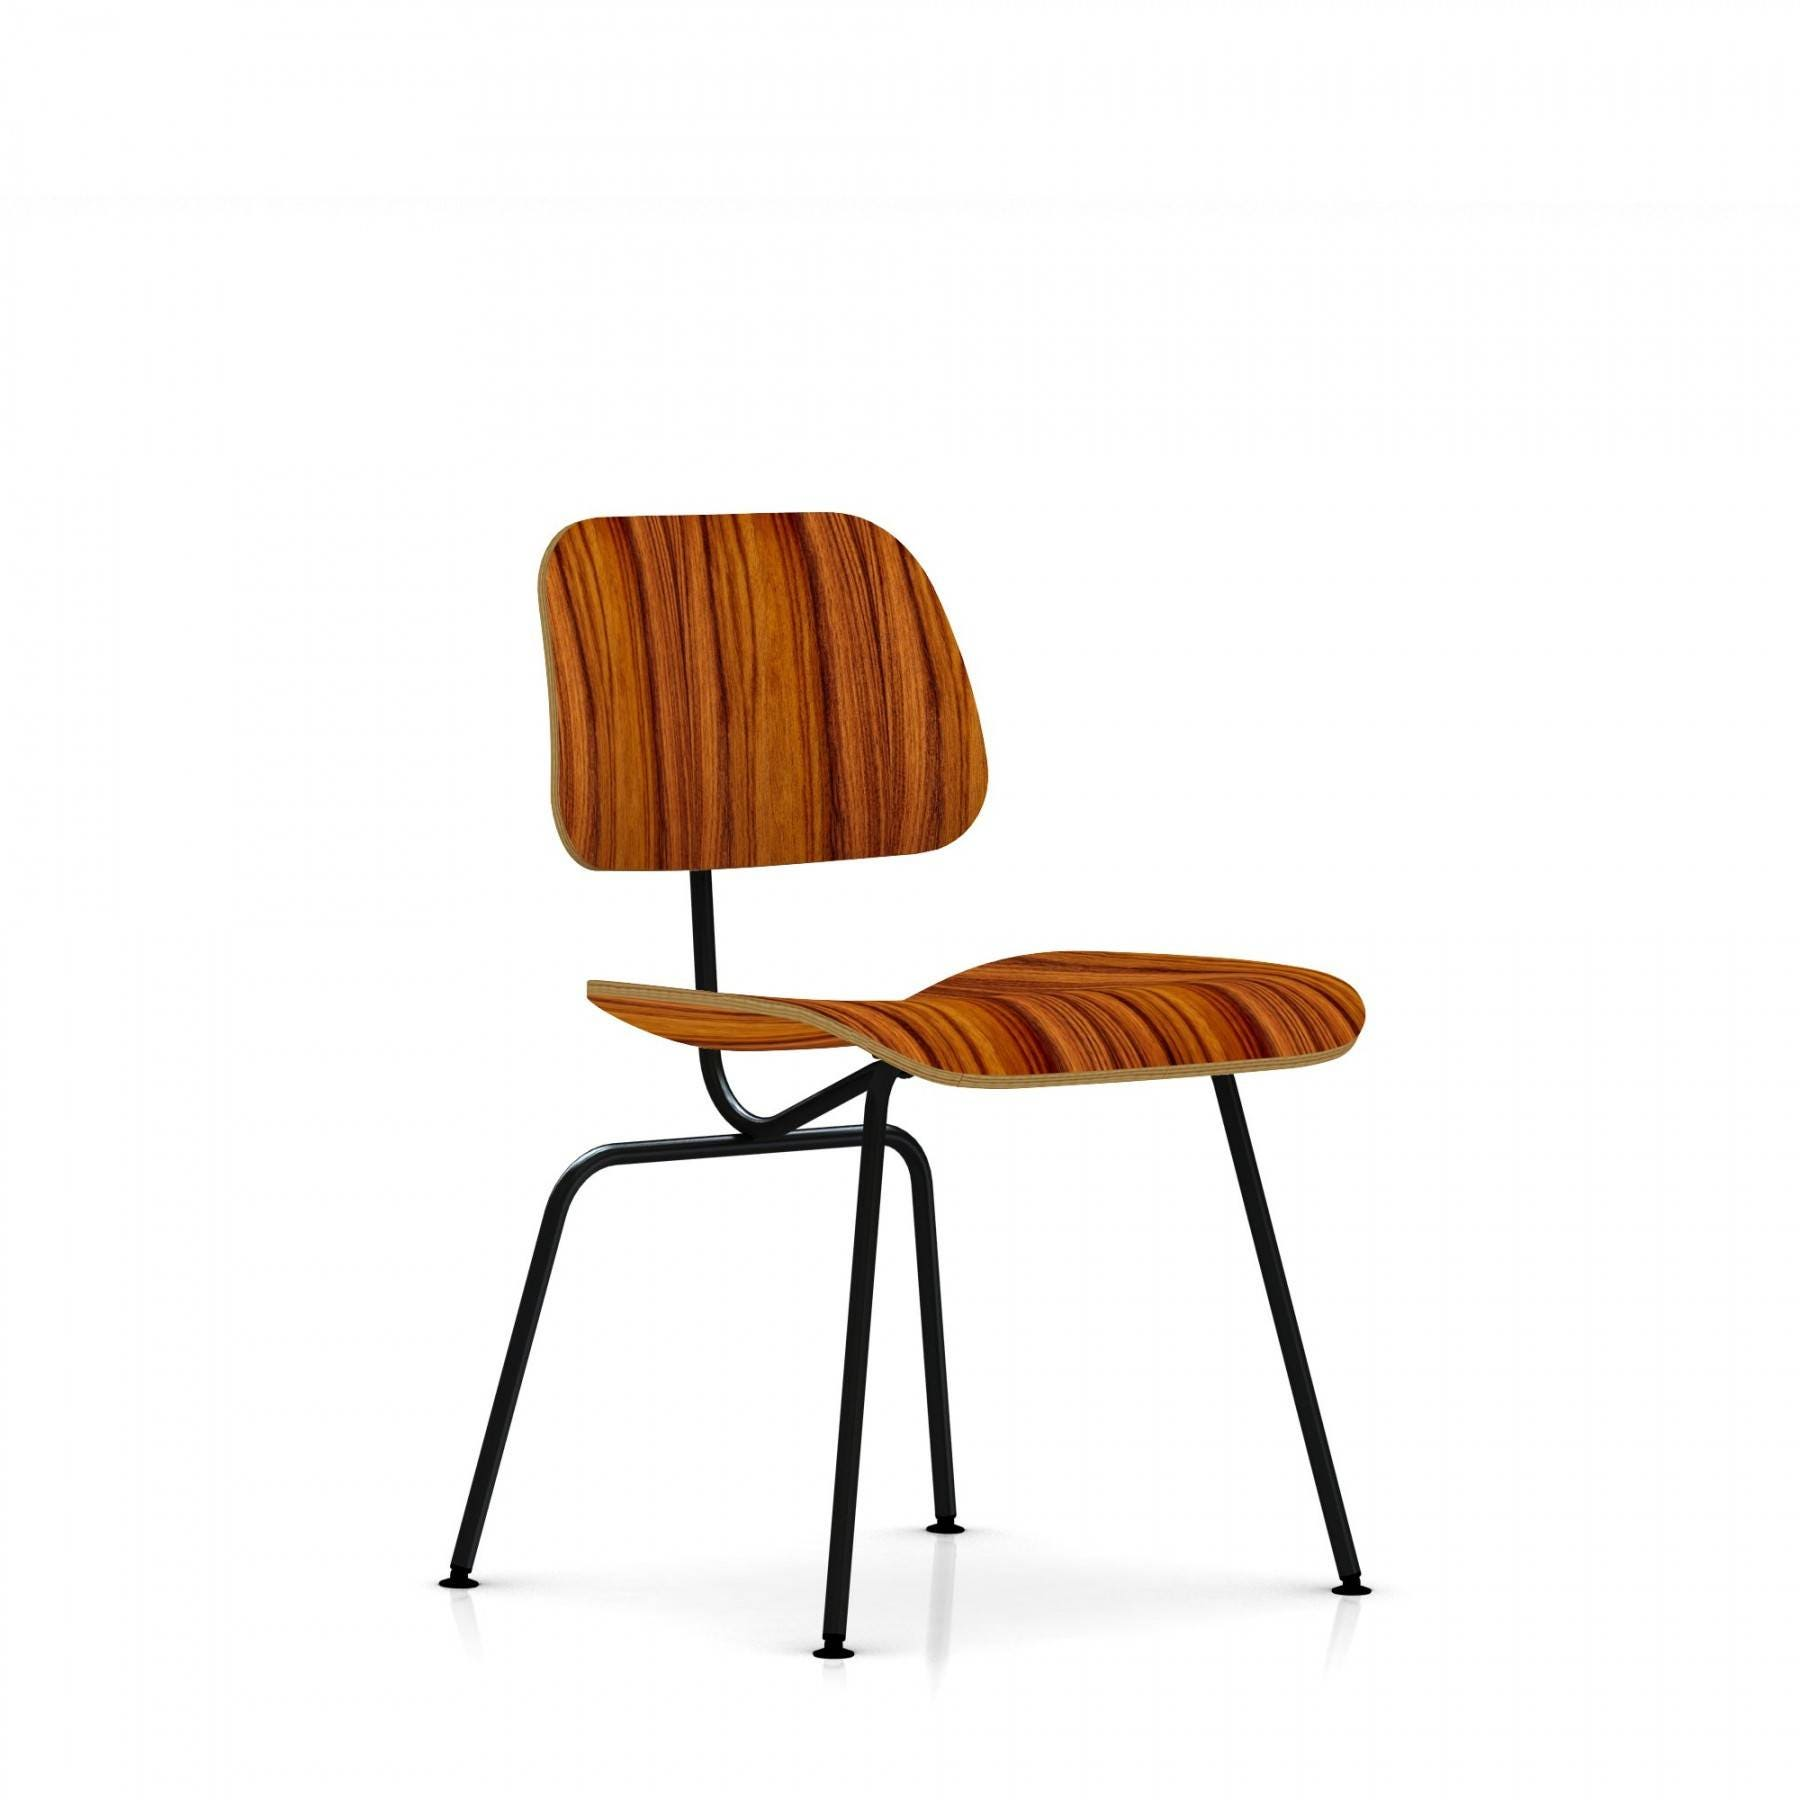 Herman miller plywood lounge chair -  Eames Molded Plywood Dining Chair Metal Legs 1